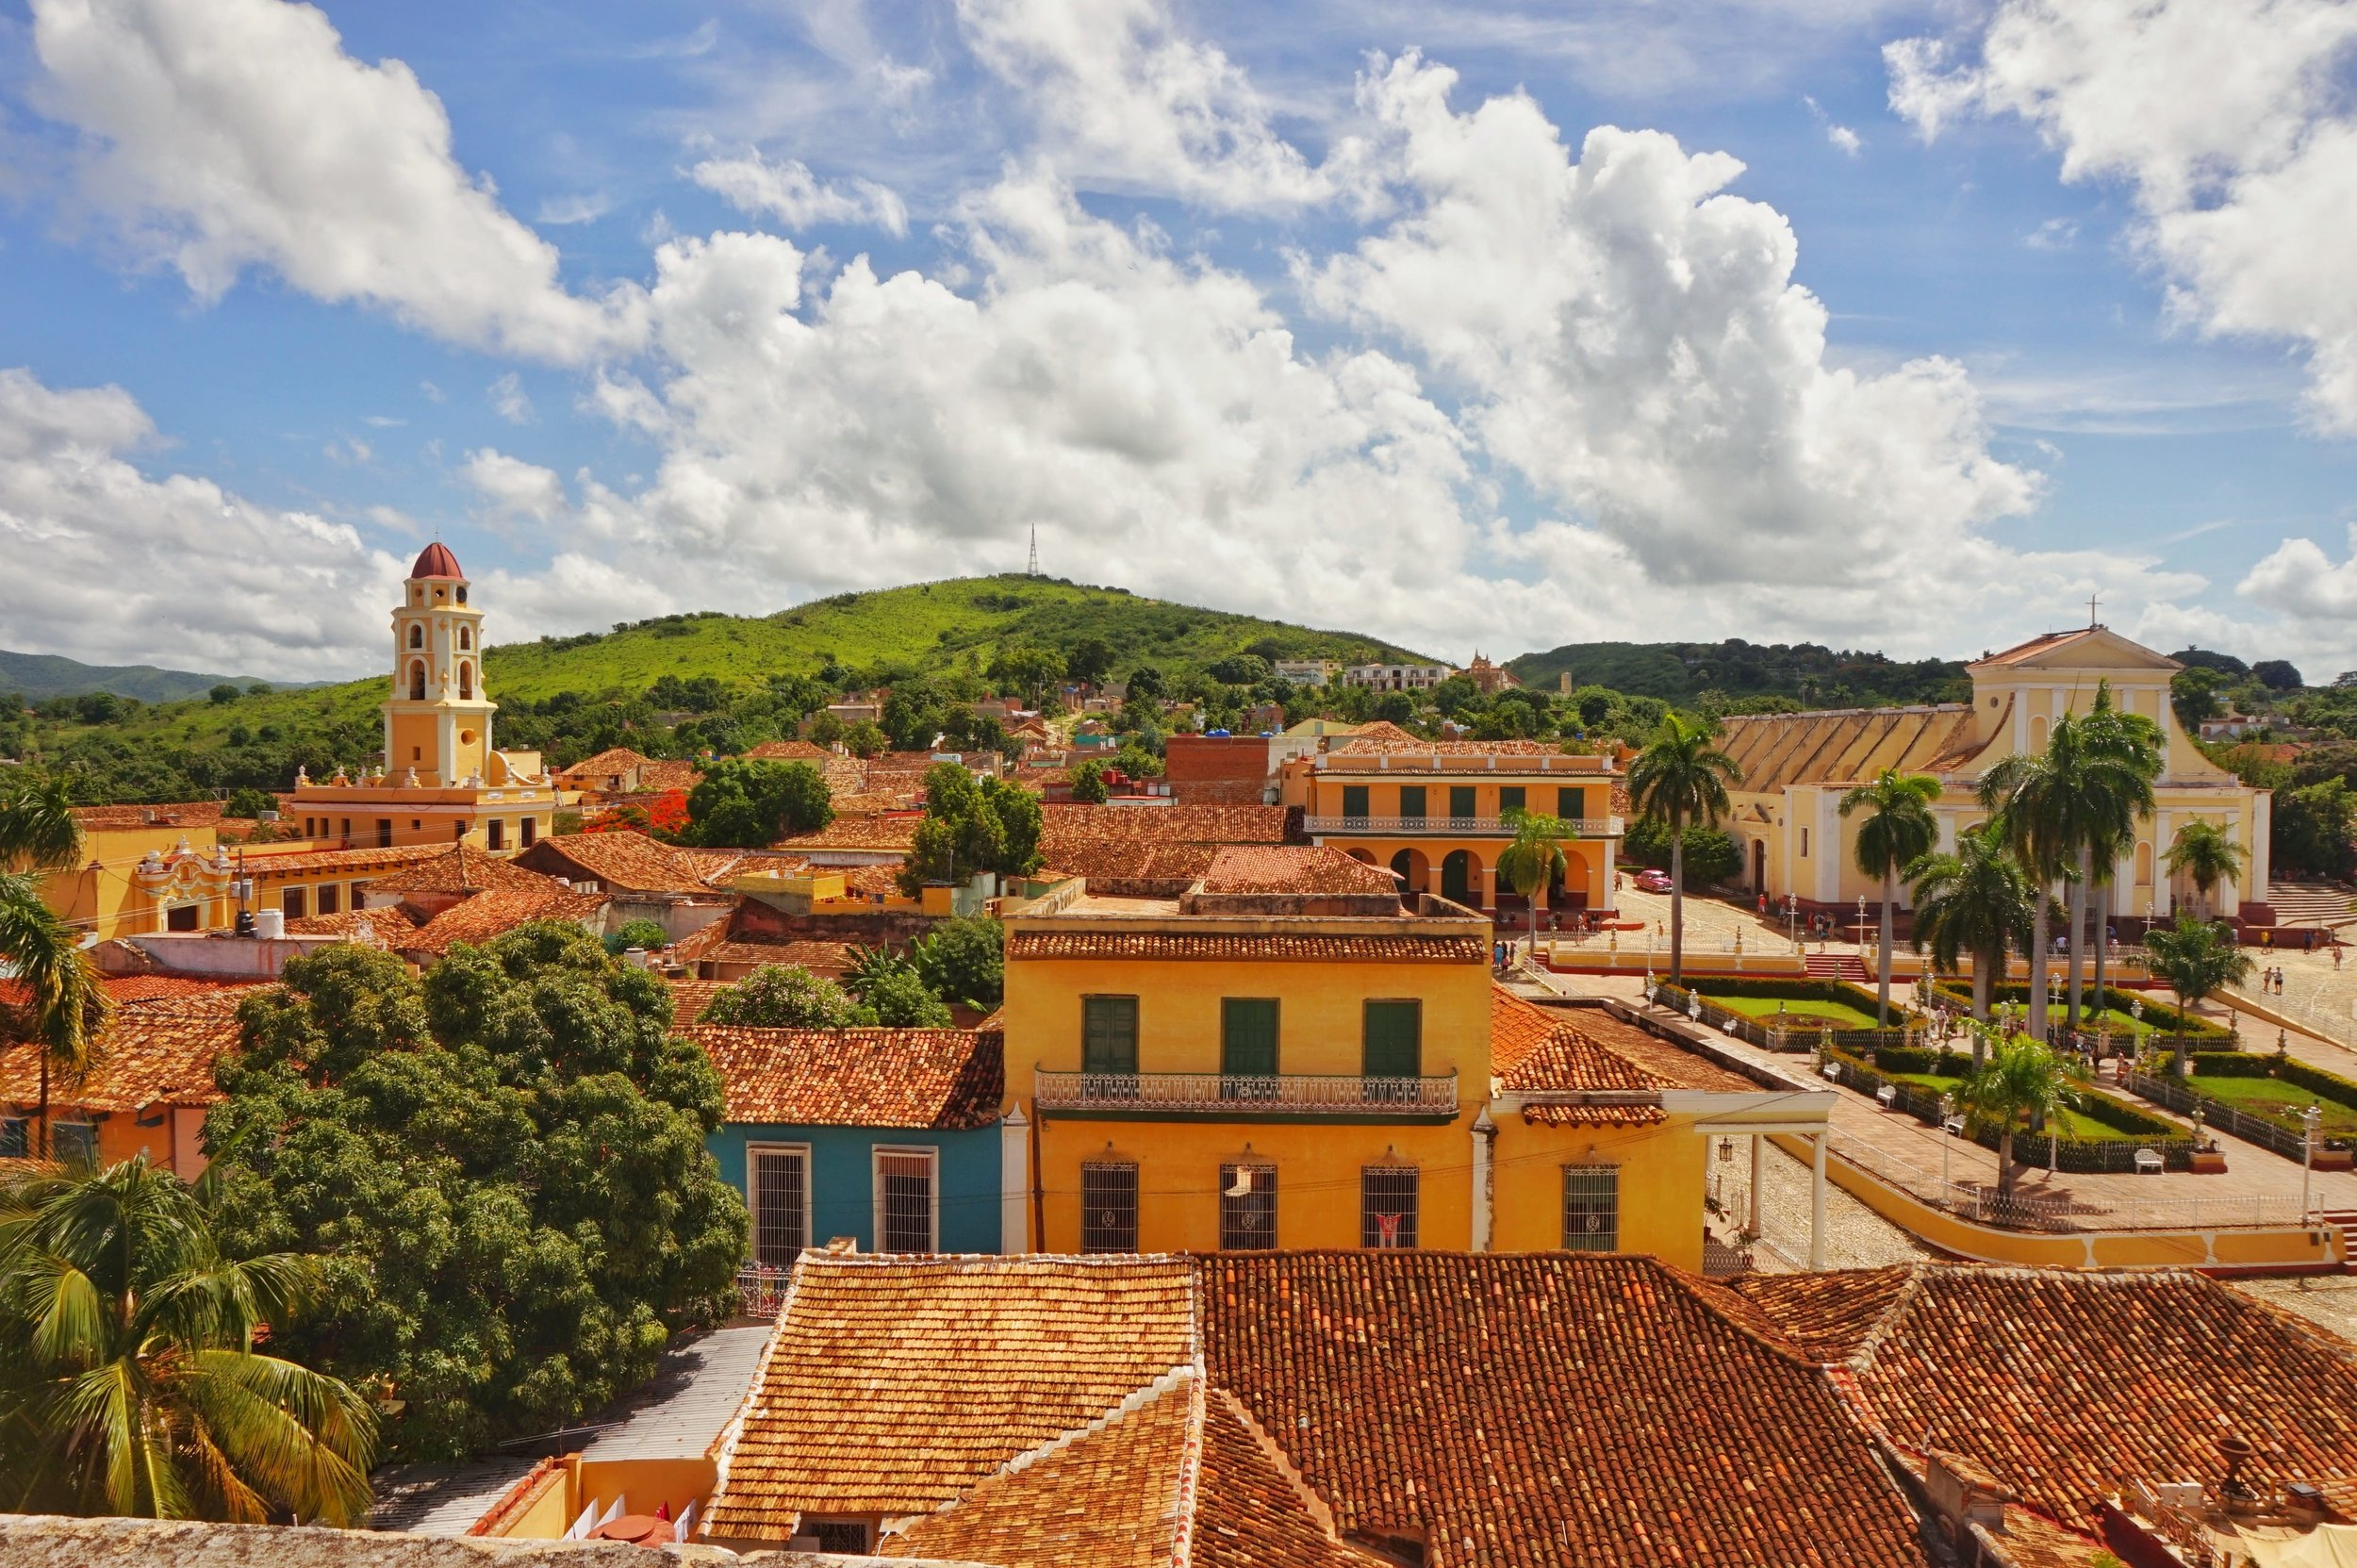 Views over the roofs of Trinidad. One of the best places to see in Cuba!